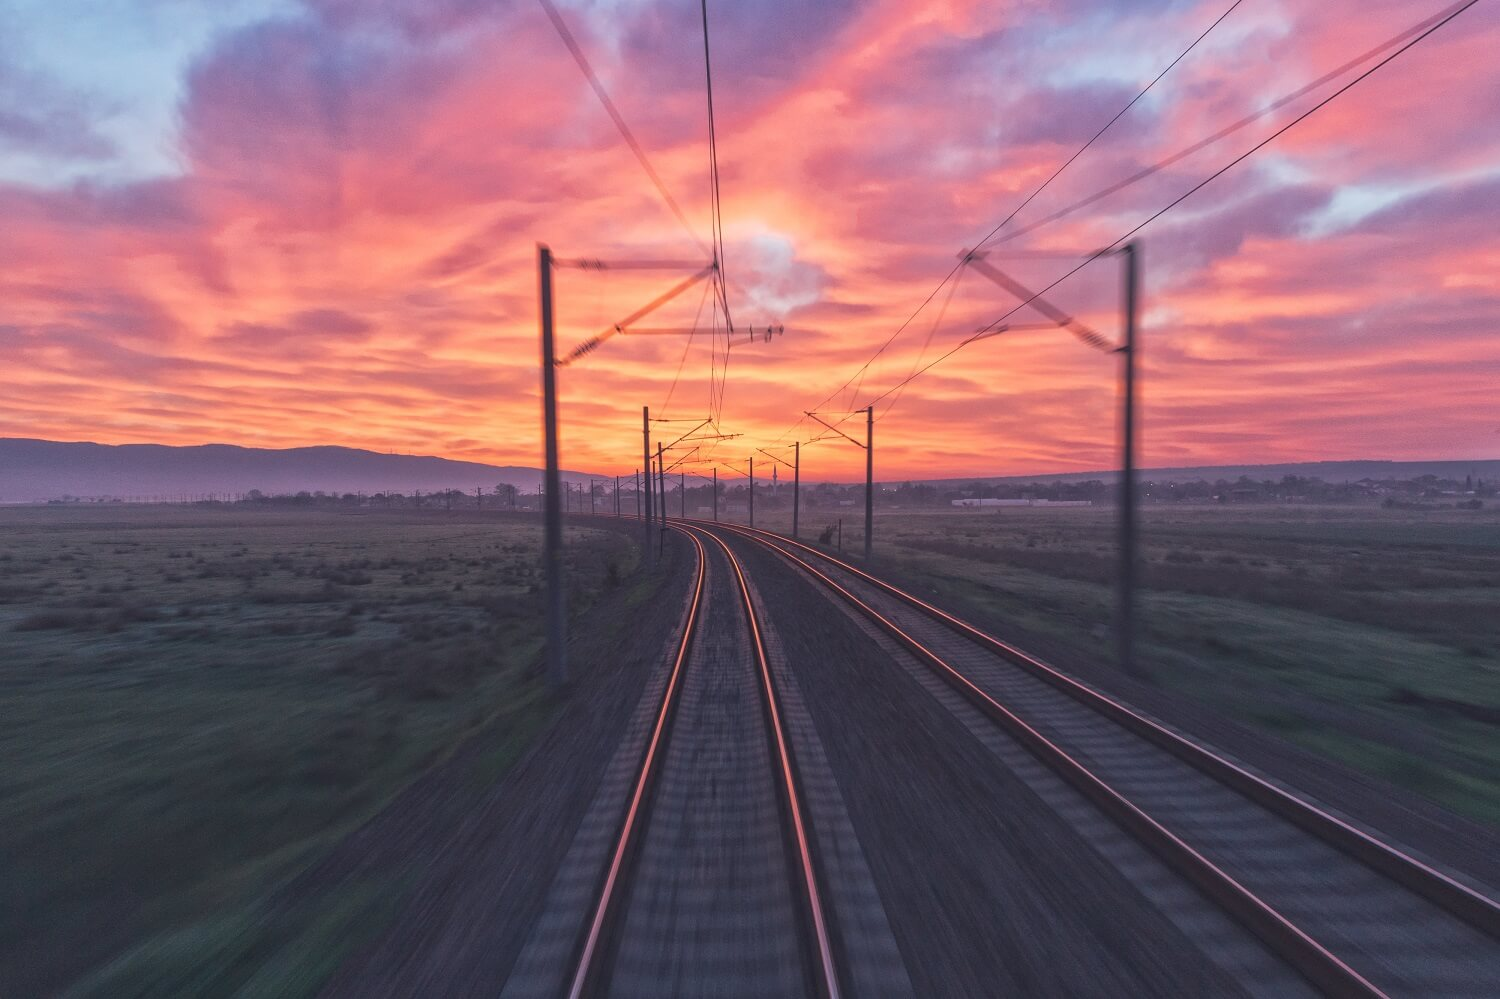 Railway tracks in Bulgaria